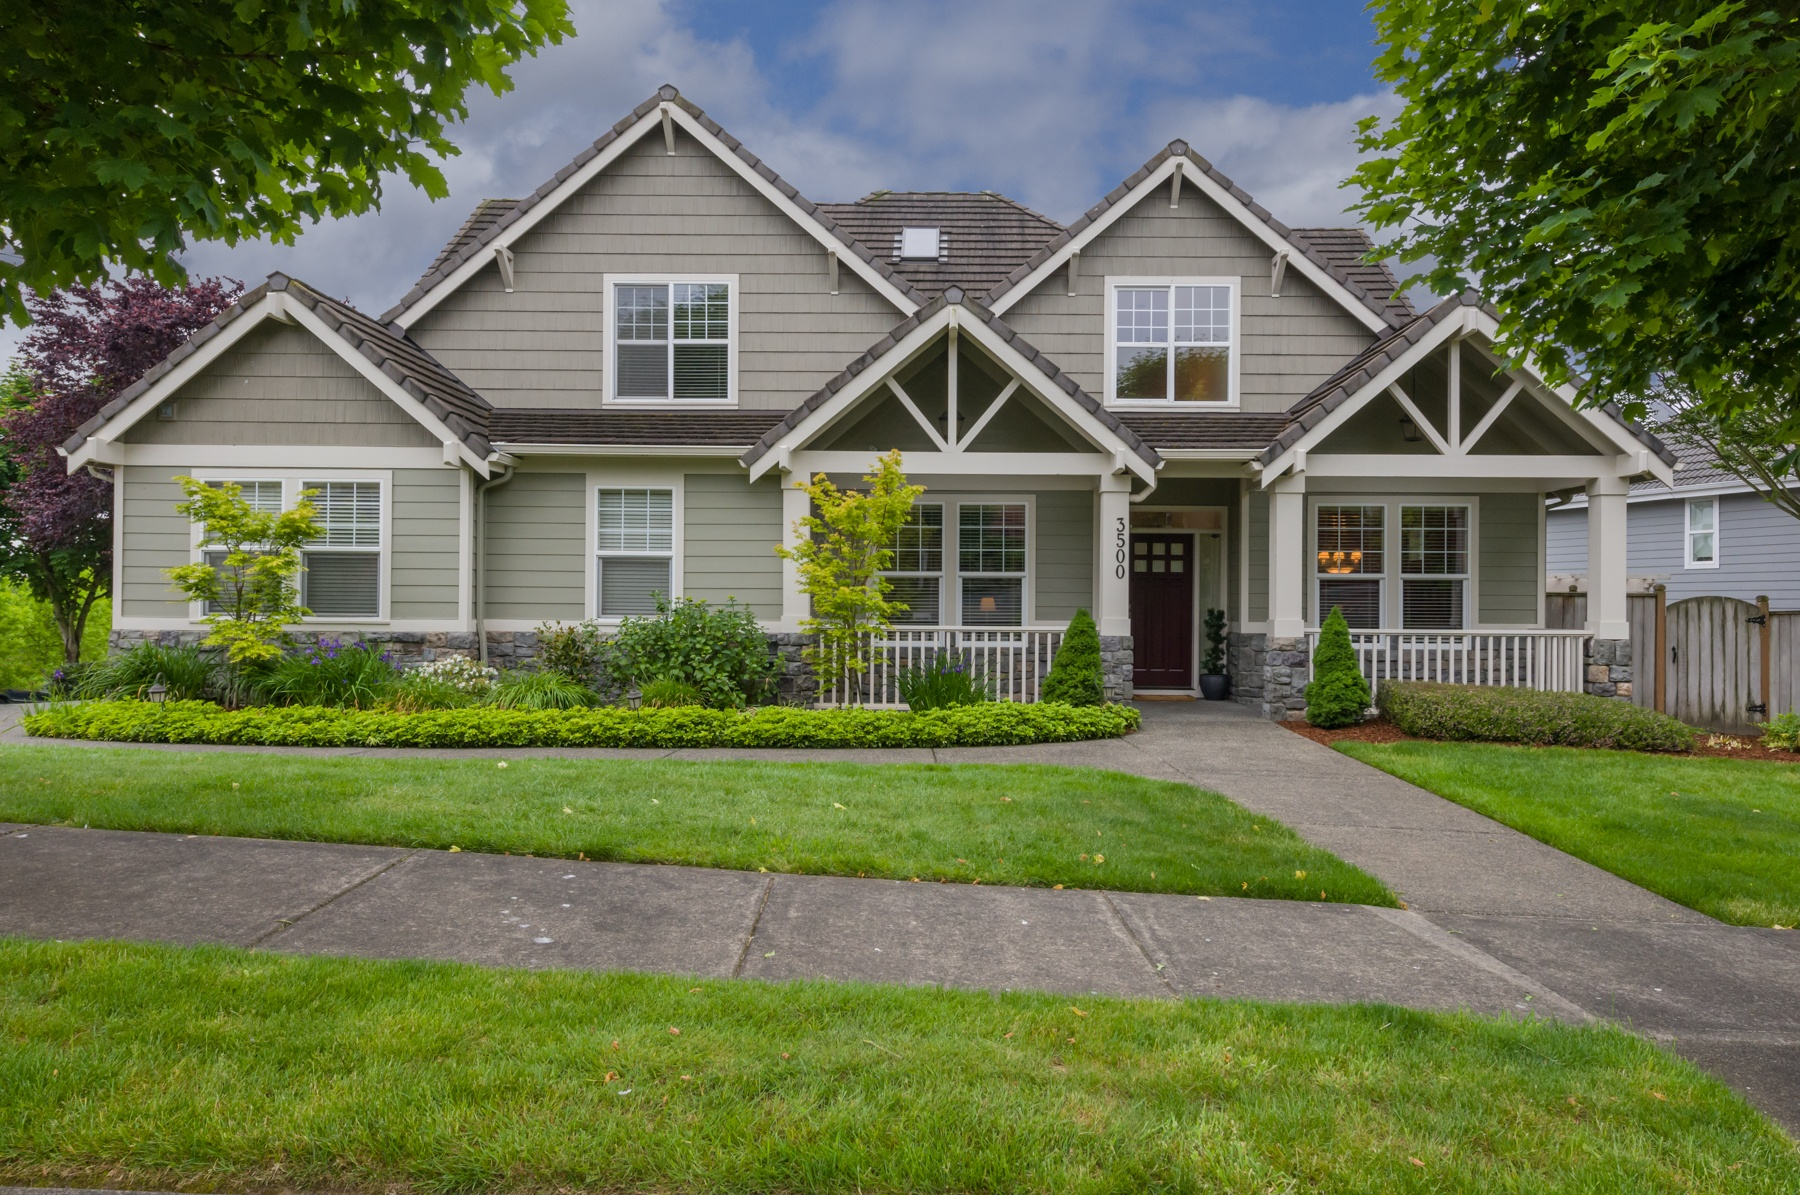 Single Family Home for Sale at 3500 NW 14th Ave Camas, Washington 98607 United States